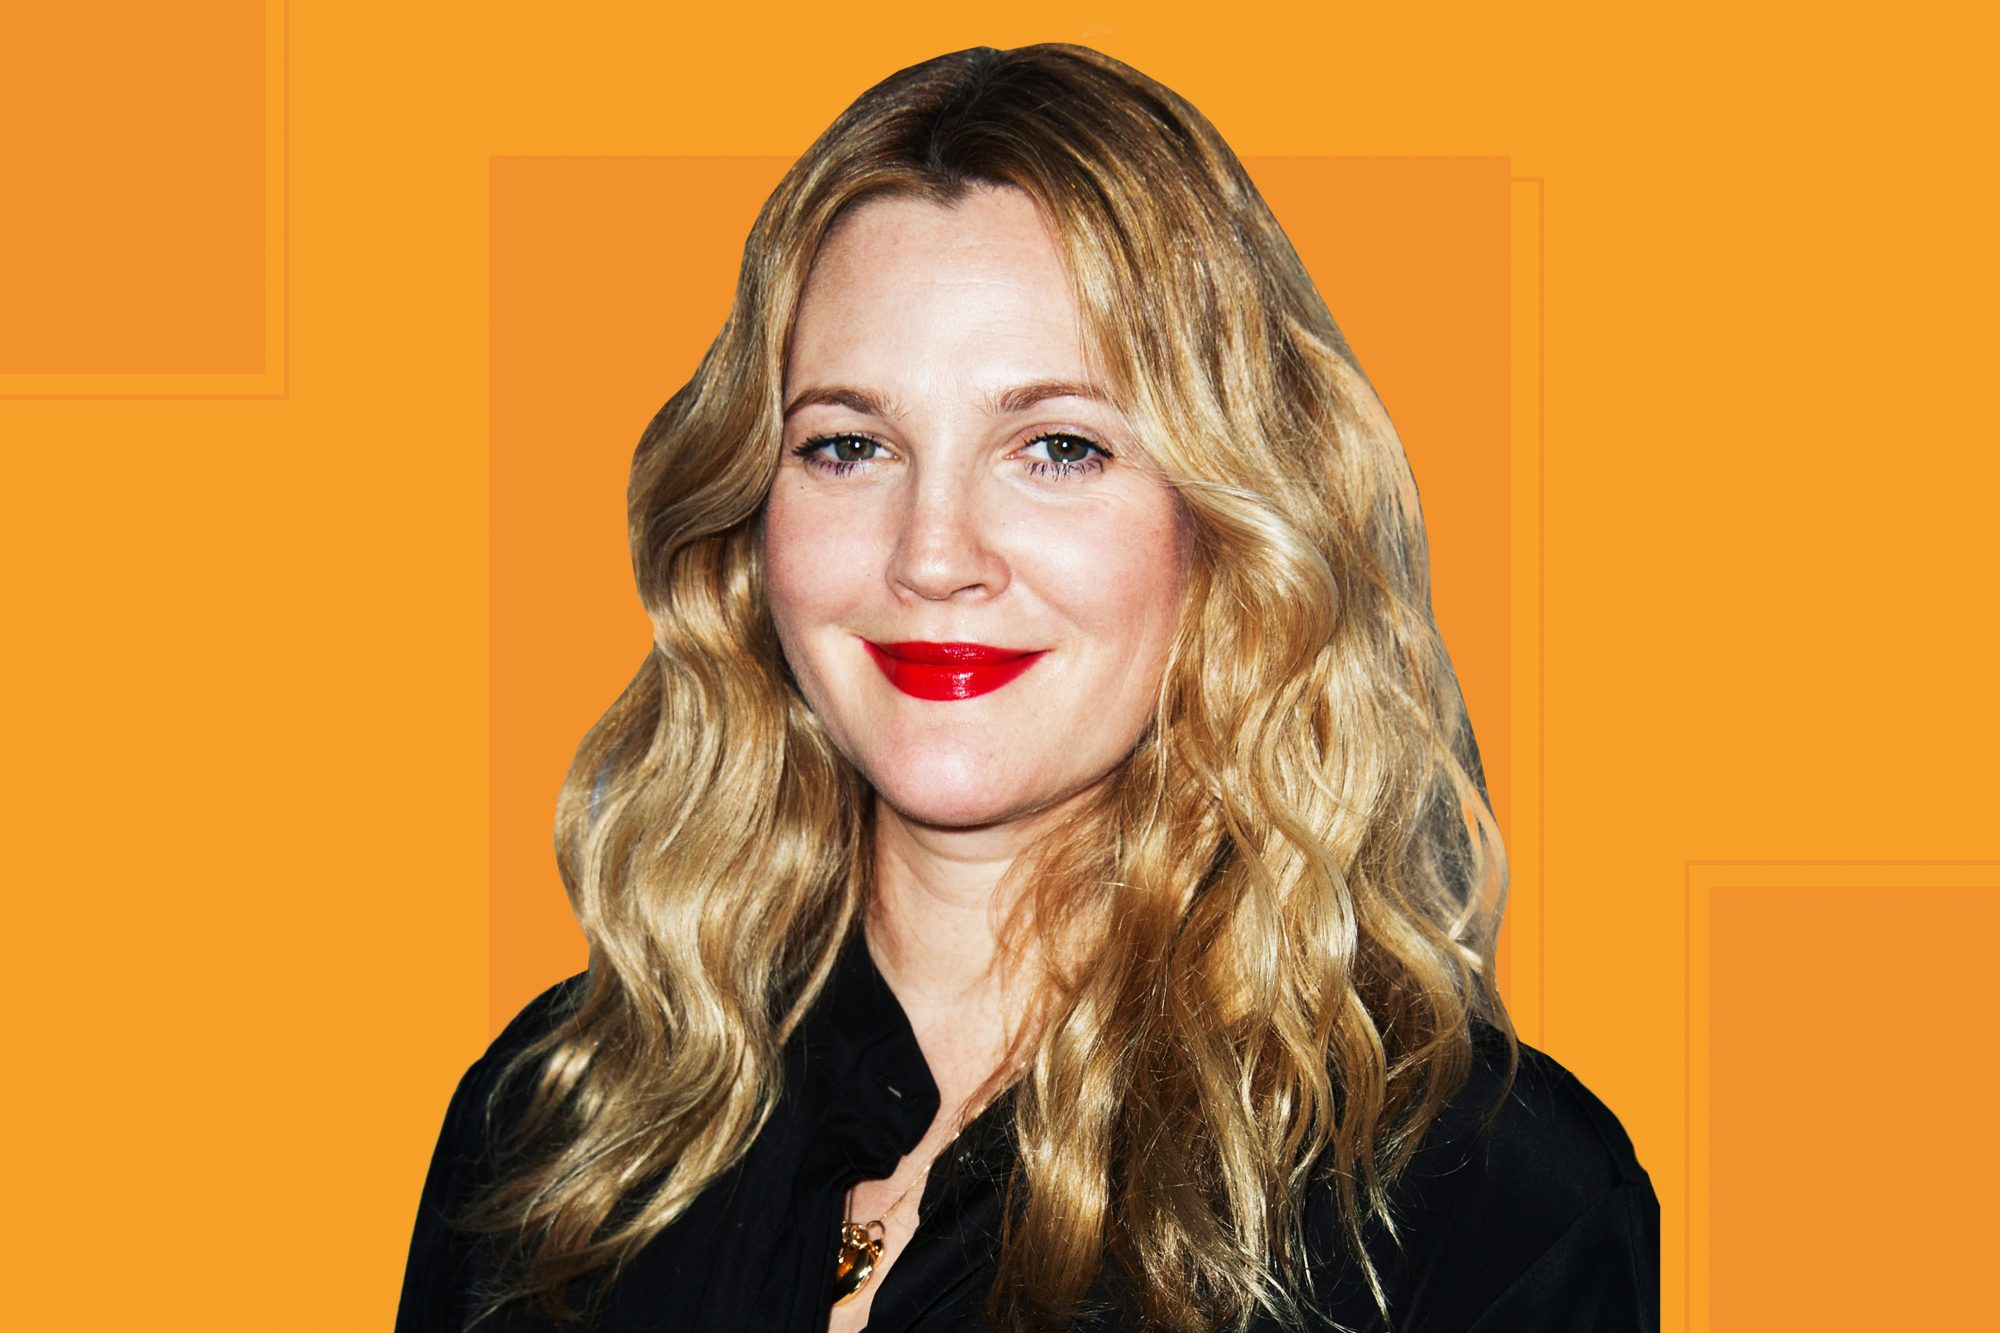 Drew-Barrymore-Uses-This-Eye-Liner-Trick-Every-Day-for-Perky-Perky-Eyes-GettyImages-460278244